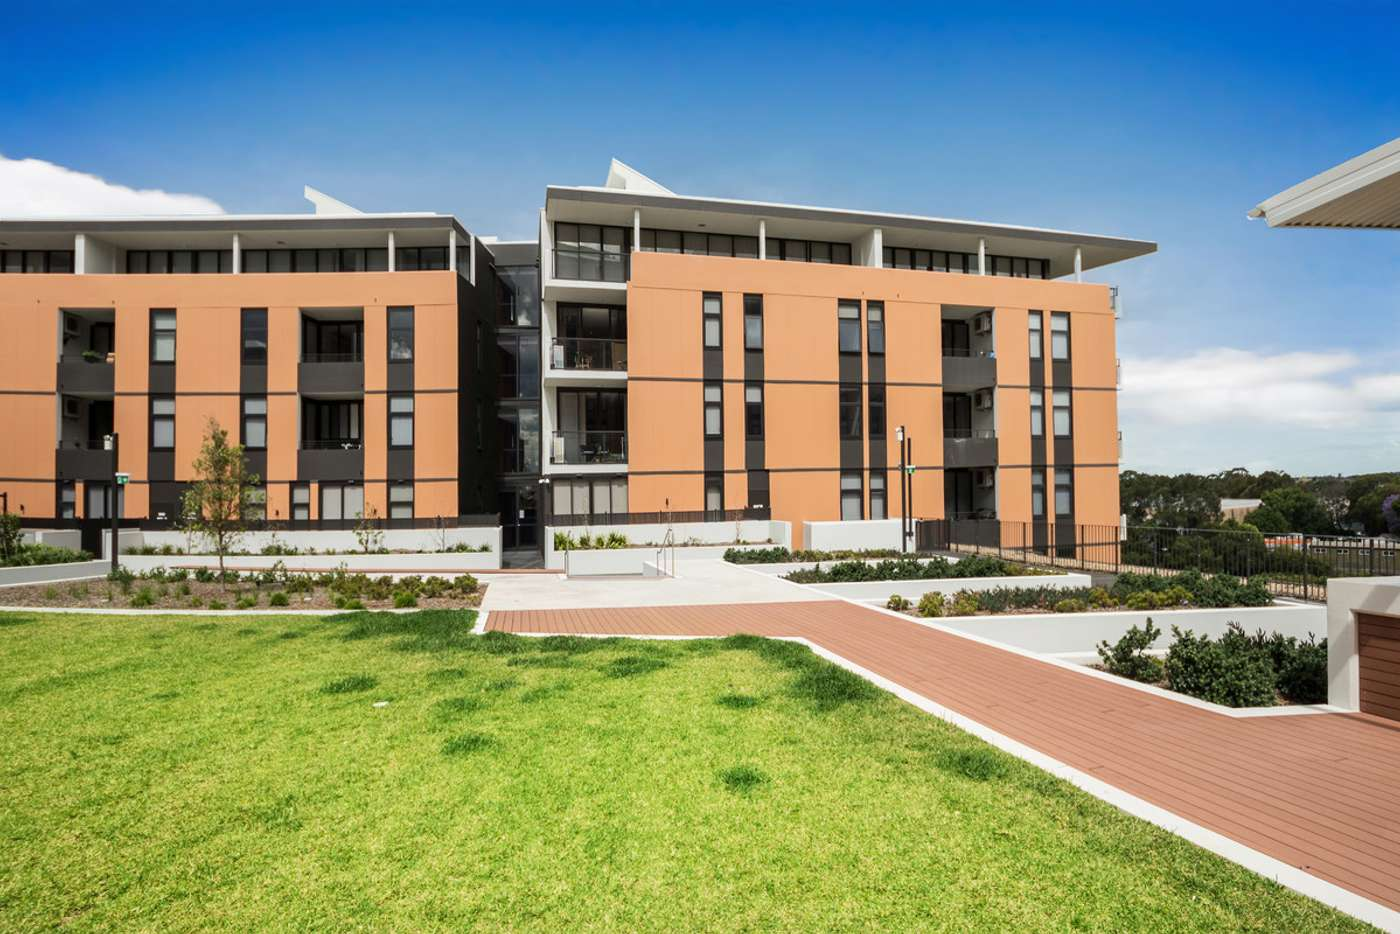 Main view of Homely apartment listing, 209A/3 Broughton Street, Parramatta NSW 2150